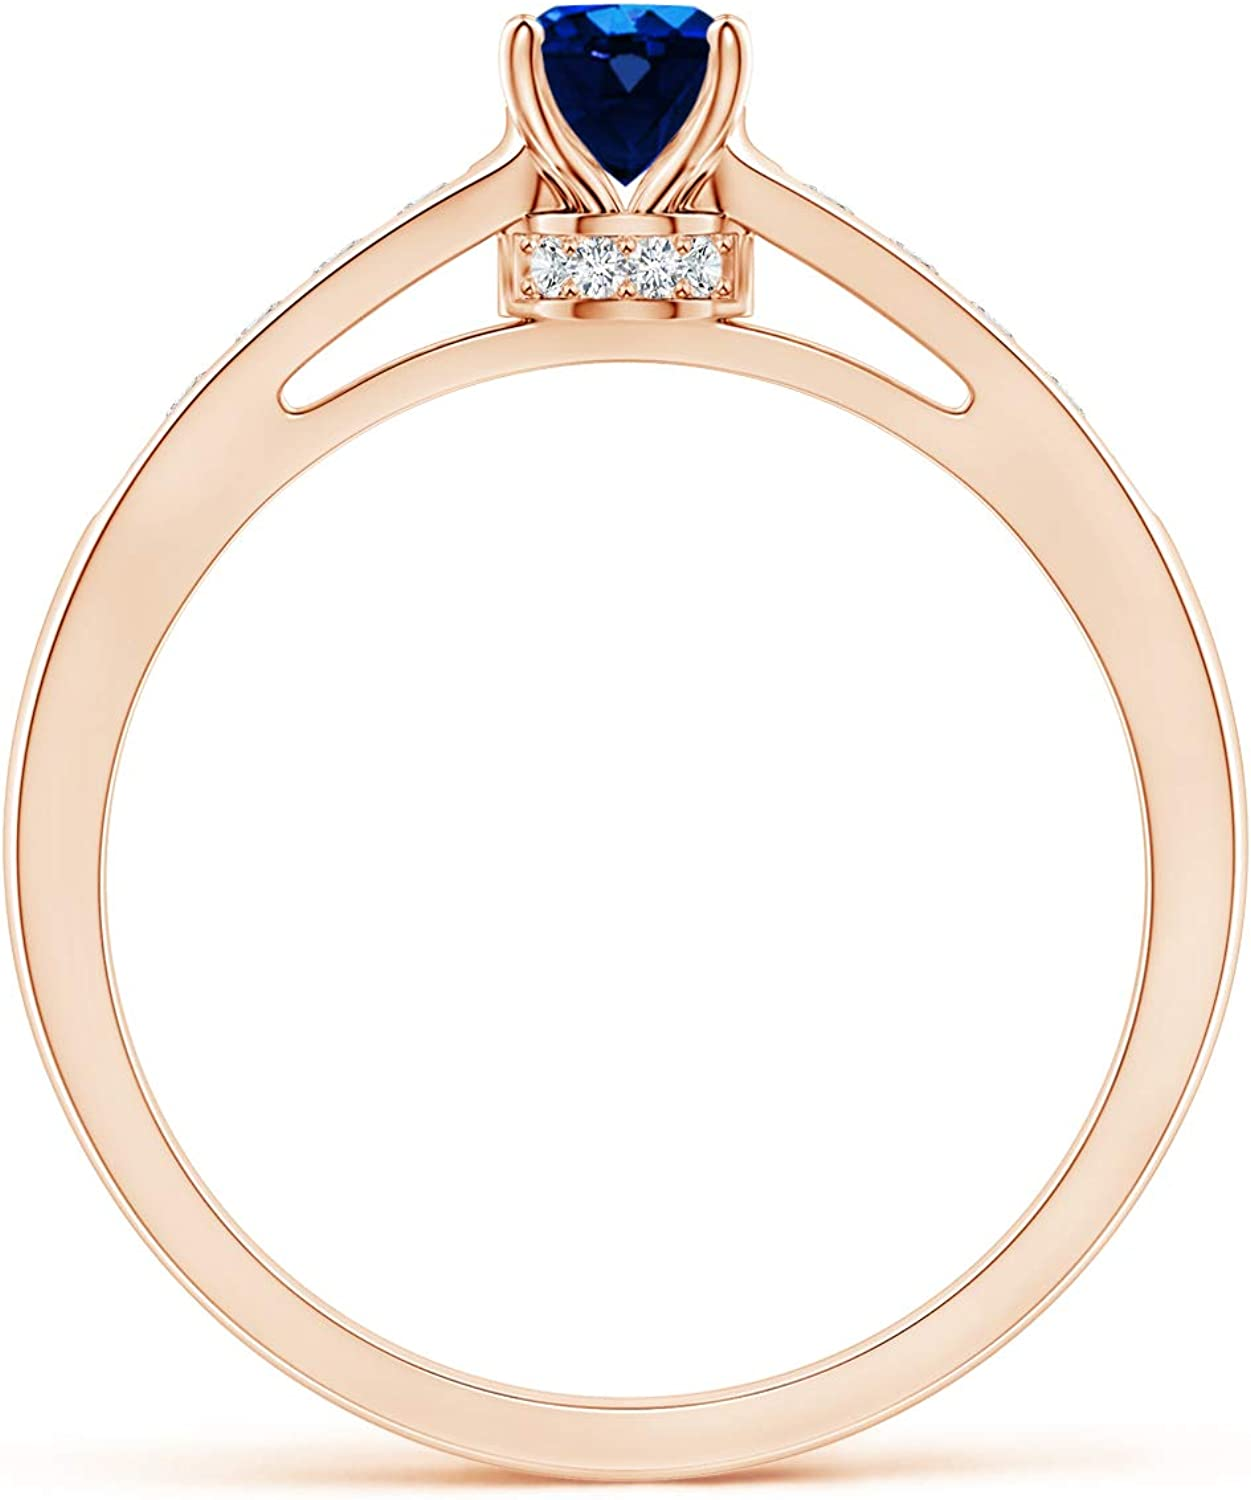 Details about  /Oval Sapphire Solitaire Ring with Channel Set Simulated Diamond in 9k Fine Gold